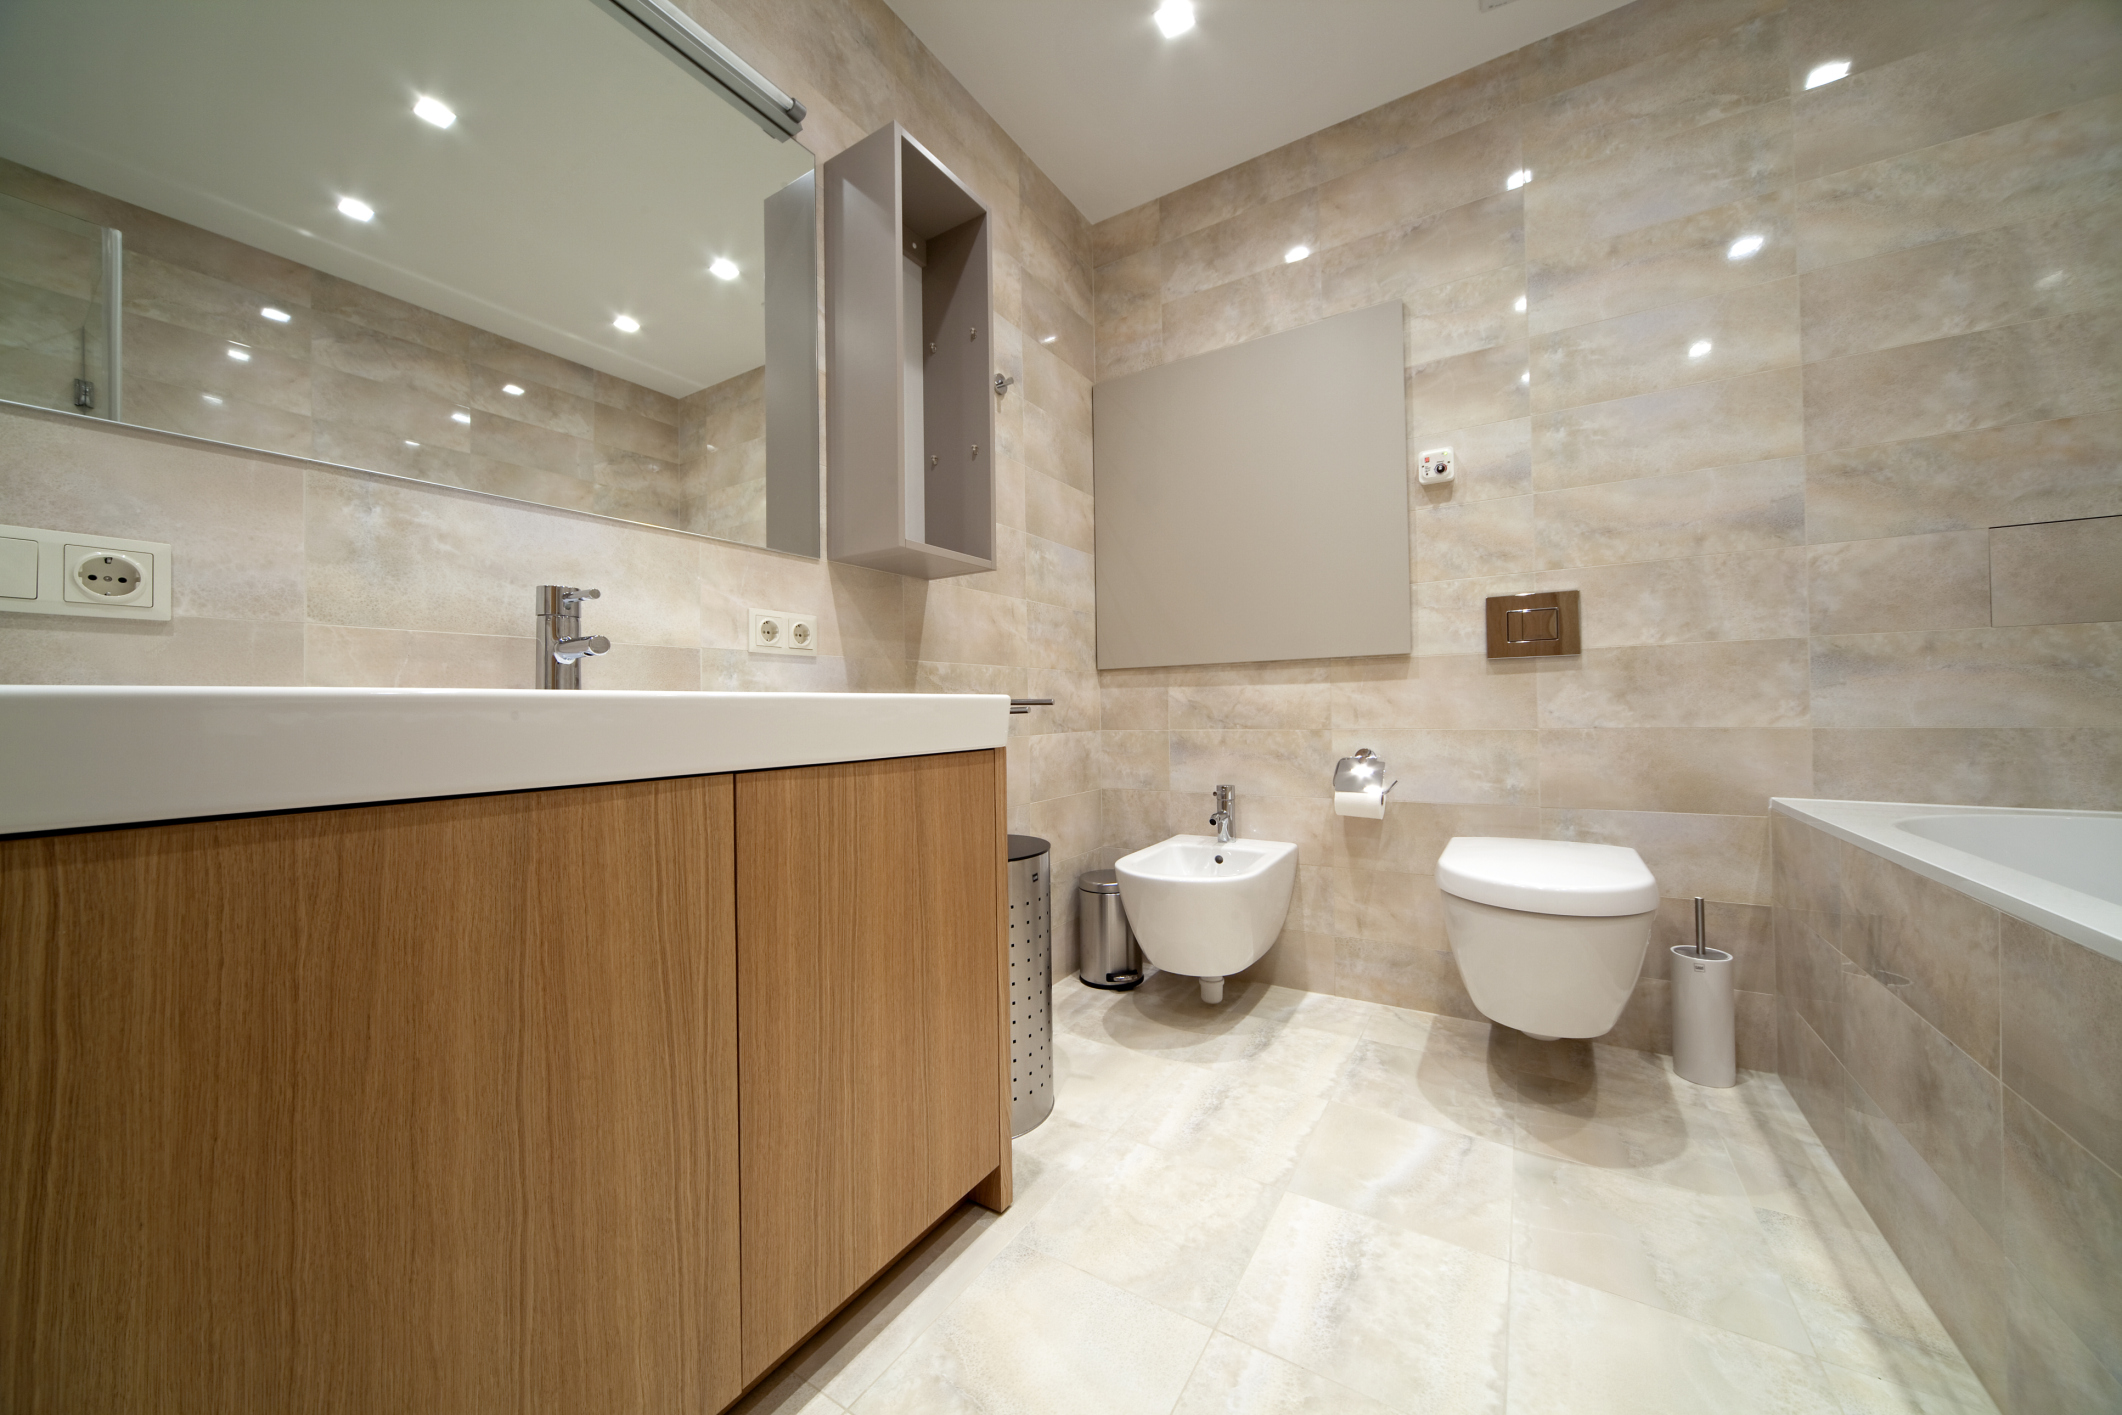 Remodel Your Bathroom Despite Being On A Tight Budget